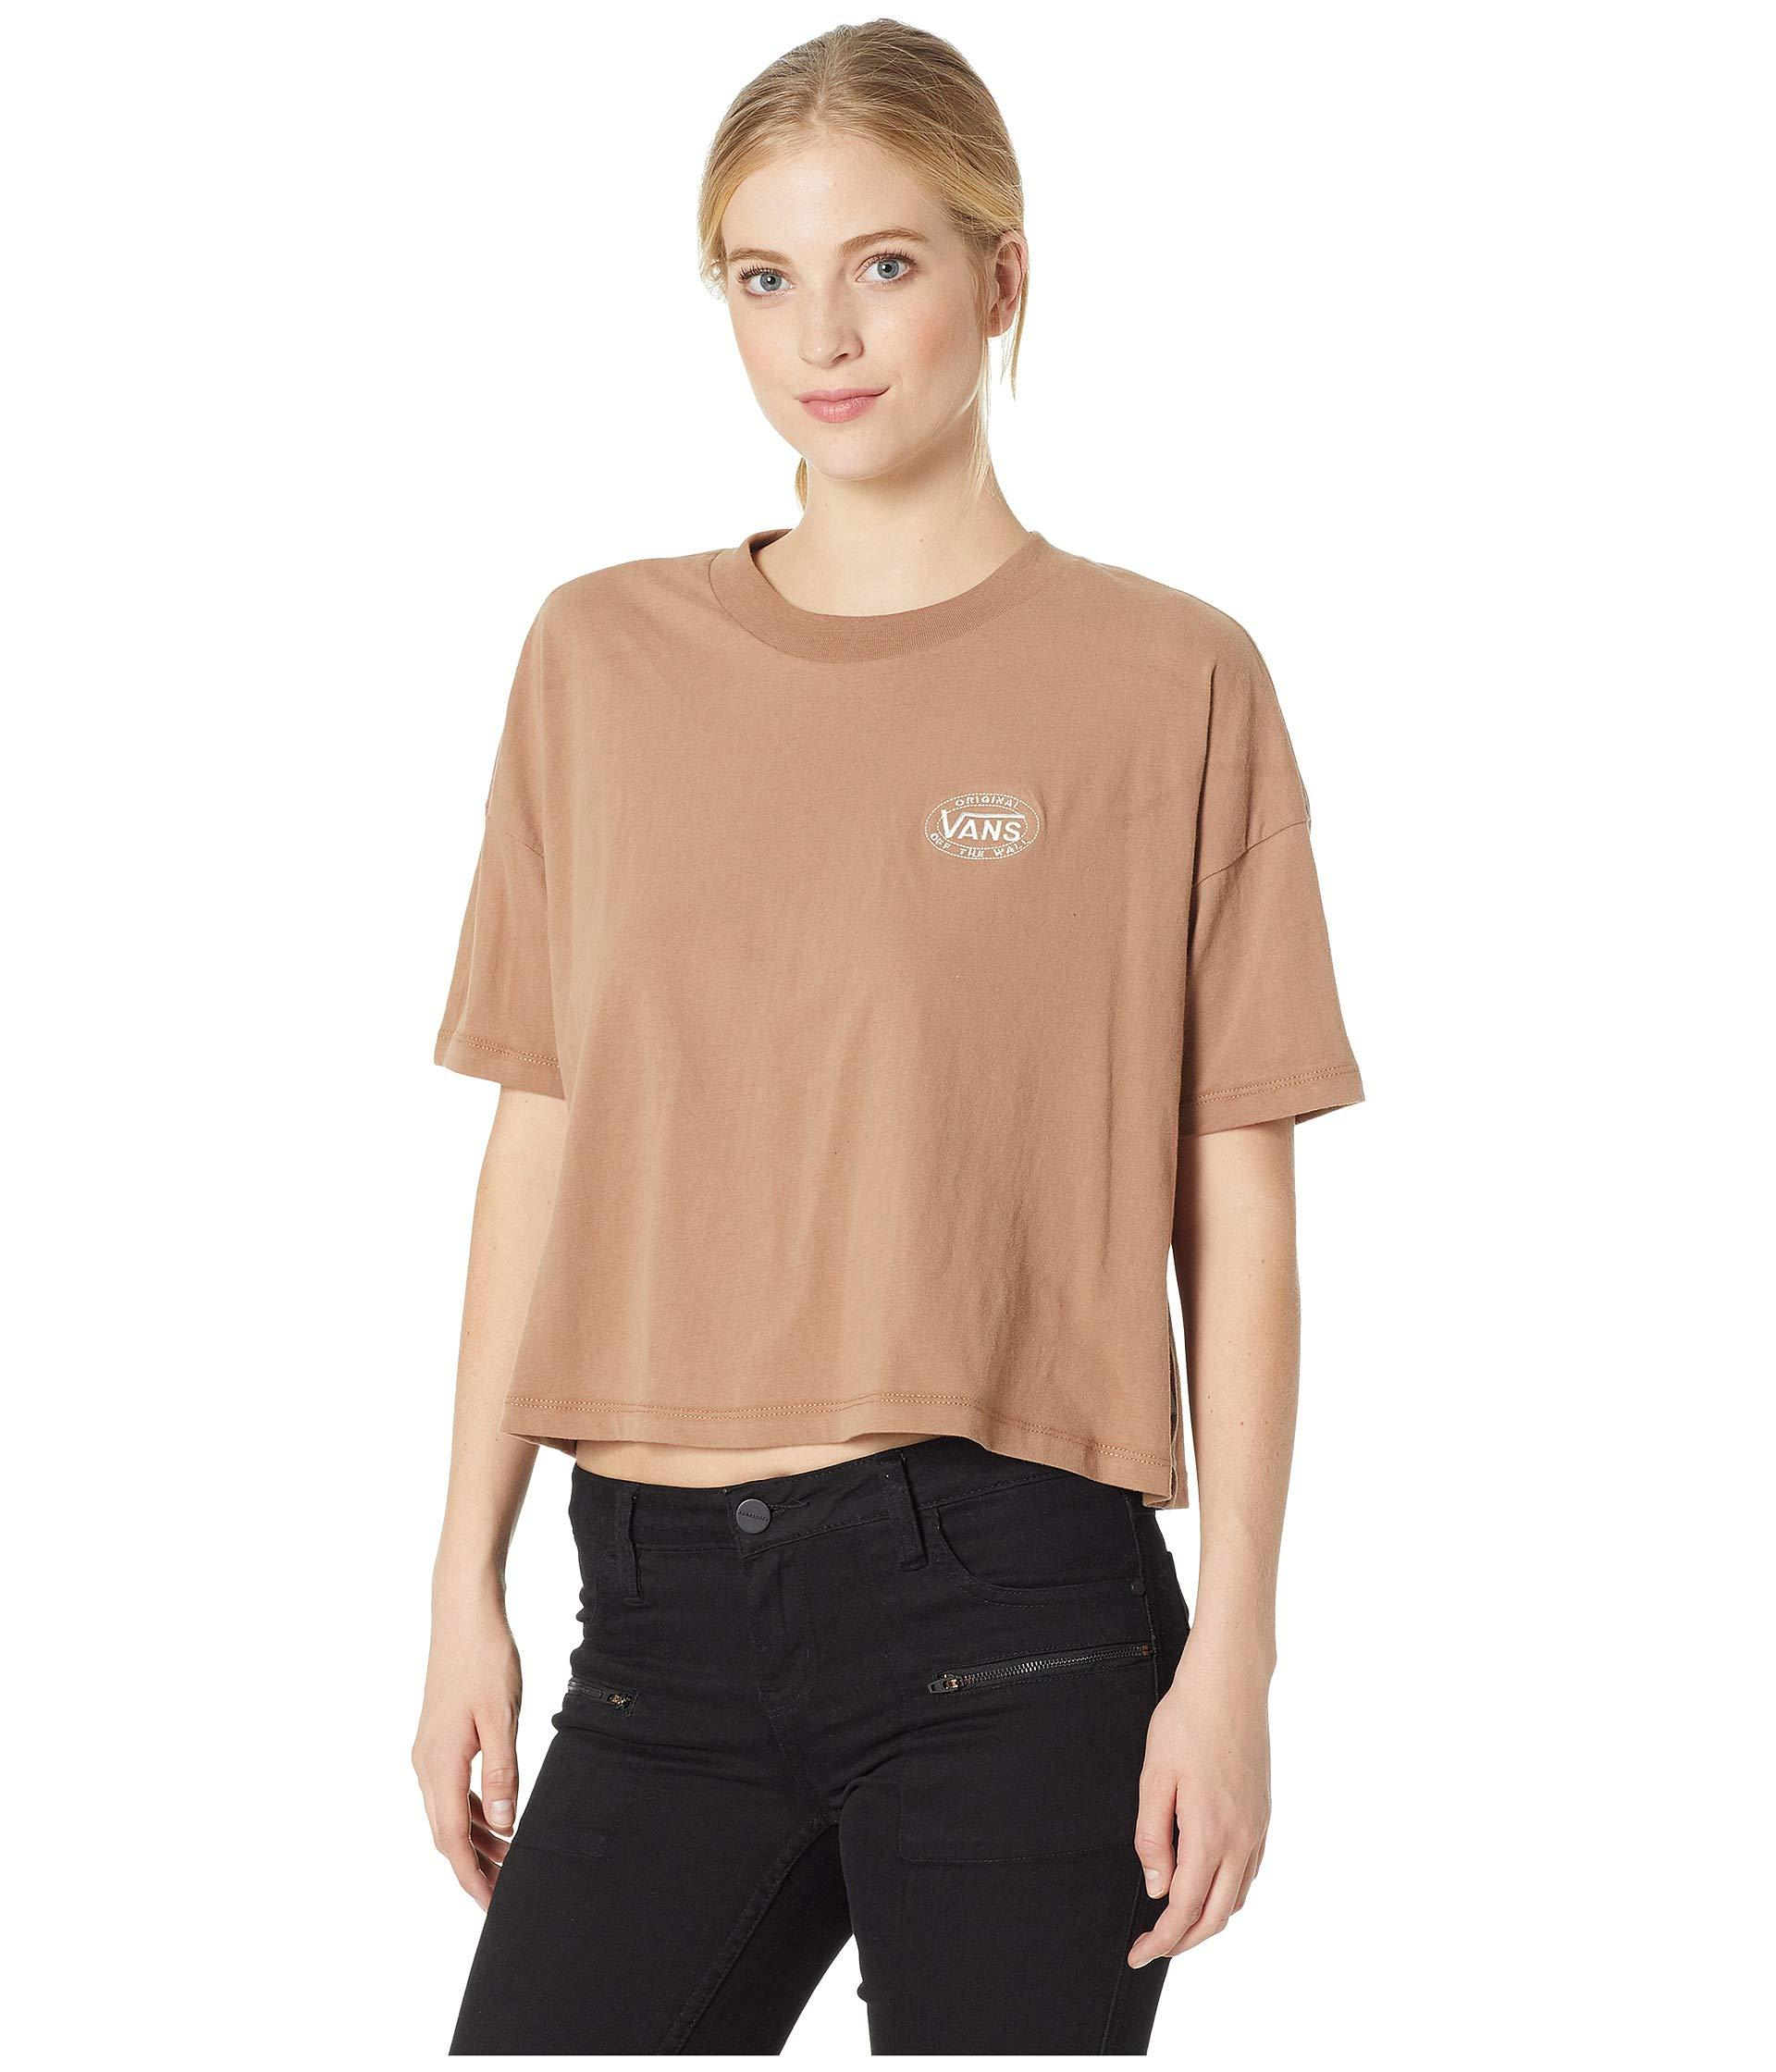 d3e707b9adb Lyst - Vans Junction Top in Natural - Save 37%